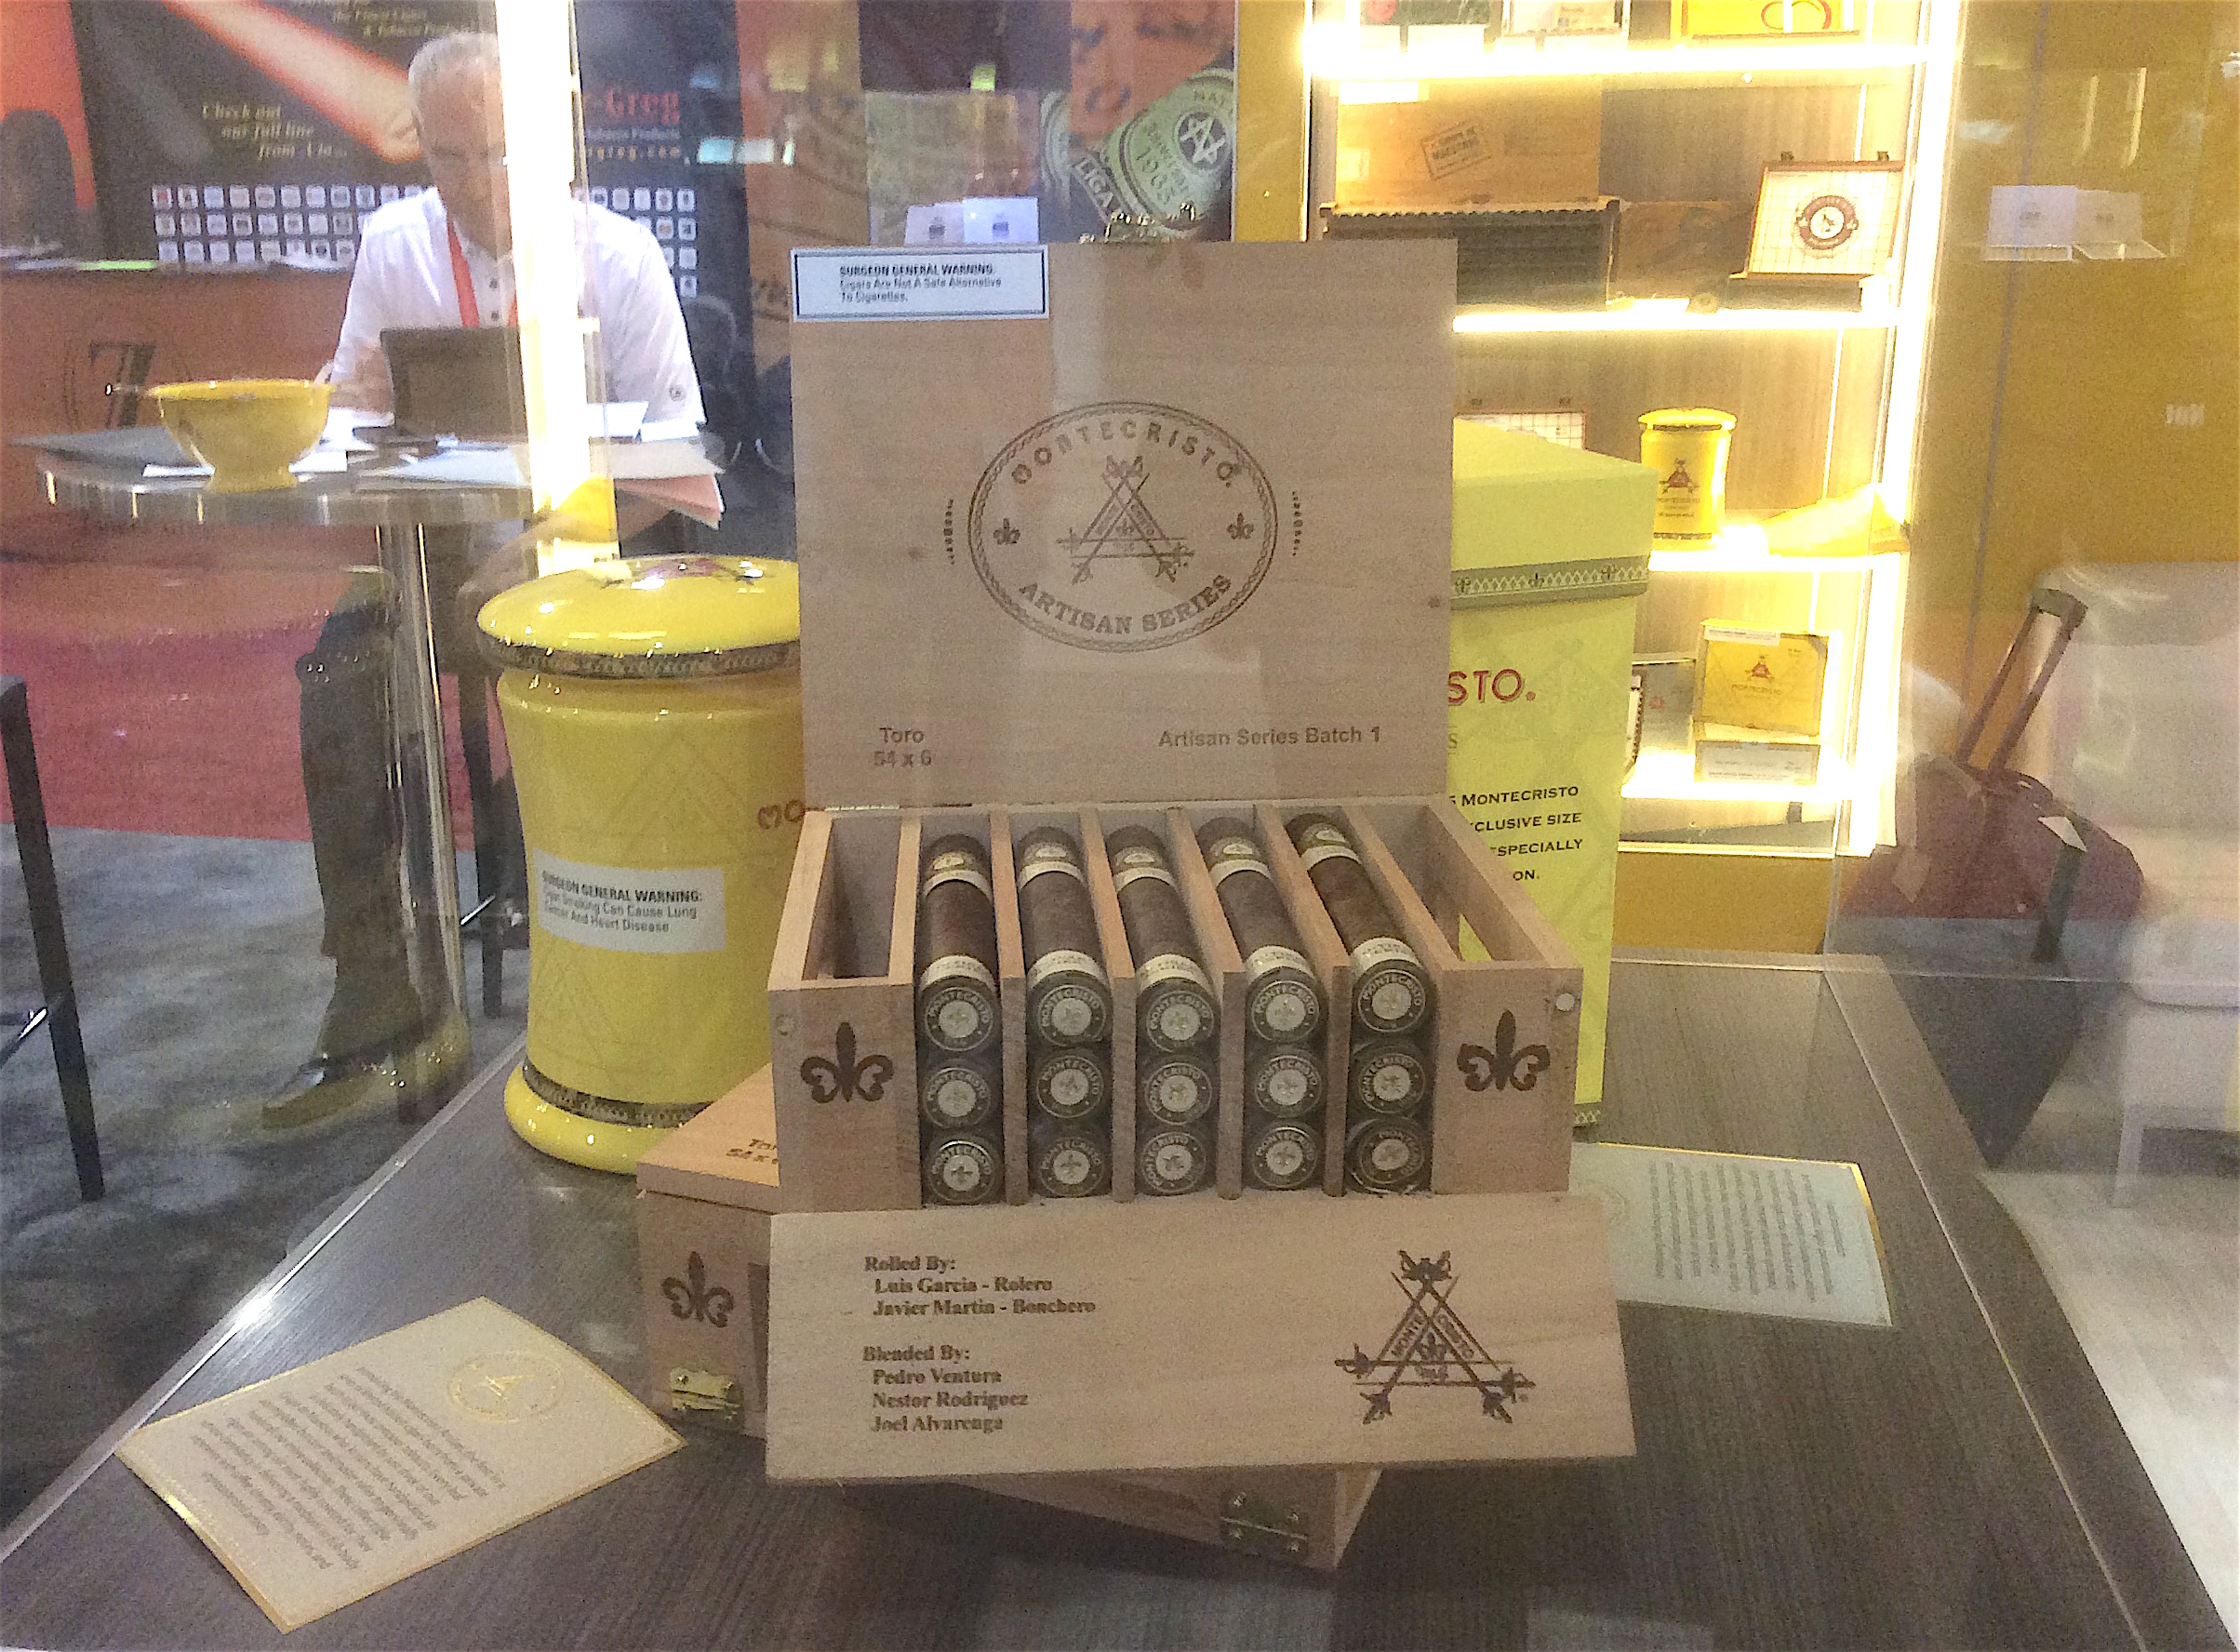 Cigar News: Montecristo Artisan Batch 1 Unveiled by Altadis USA at 2016 IPCPR